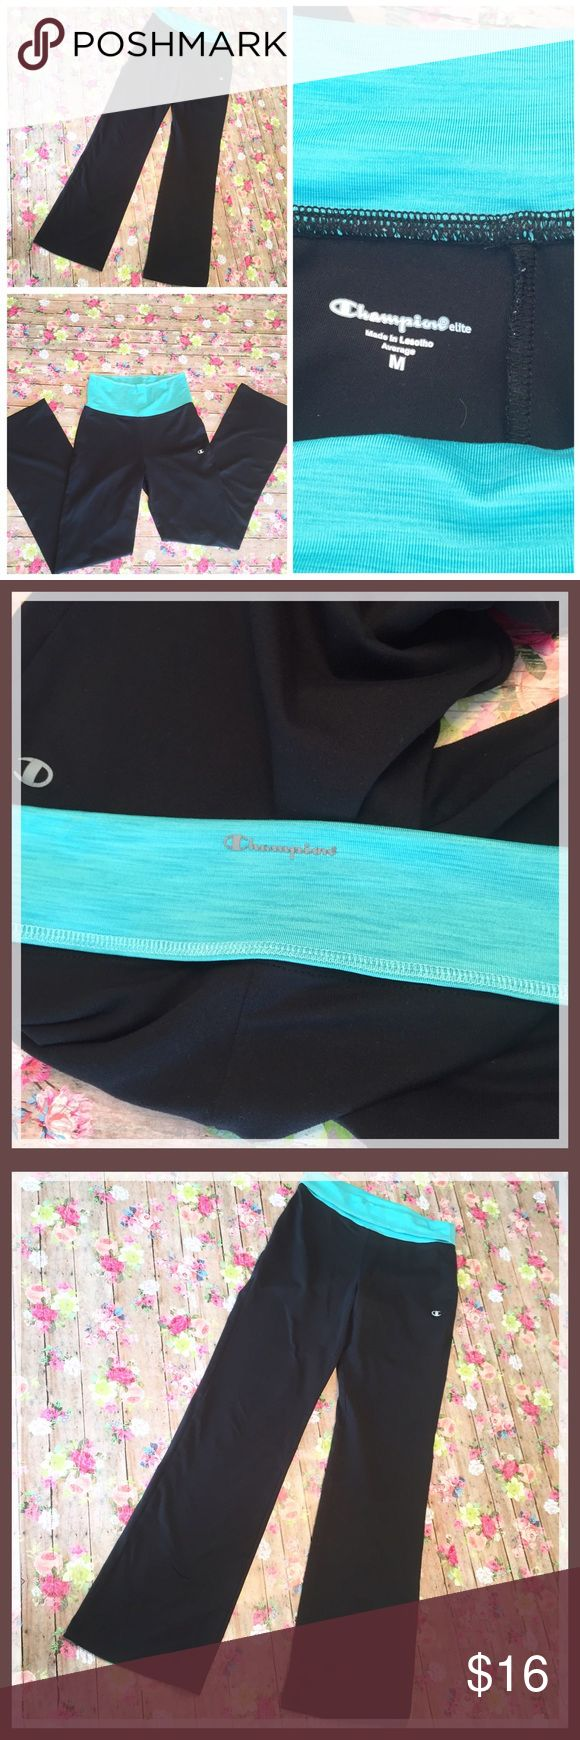 Champion Elite Teal Waist Athletic Pants Women's size medium champion elite teal waistband stretch pants. Band is made to be rolled down over the waist. Made from polyester and spandex blend these are super stretchable and soft for comfort. Features the champion logo on the outer leg and a little bit of flair on the bottom legs. Measurements are: Rise- 12 inches. Waste is 13 inches and inseam is 30 inches. Measurements include the top of the waistband completely flat and not rolled. Champion…